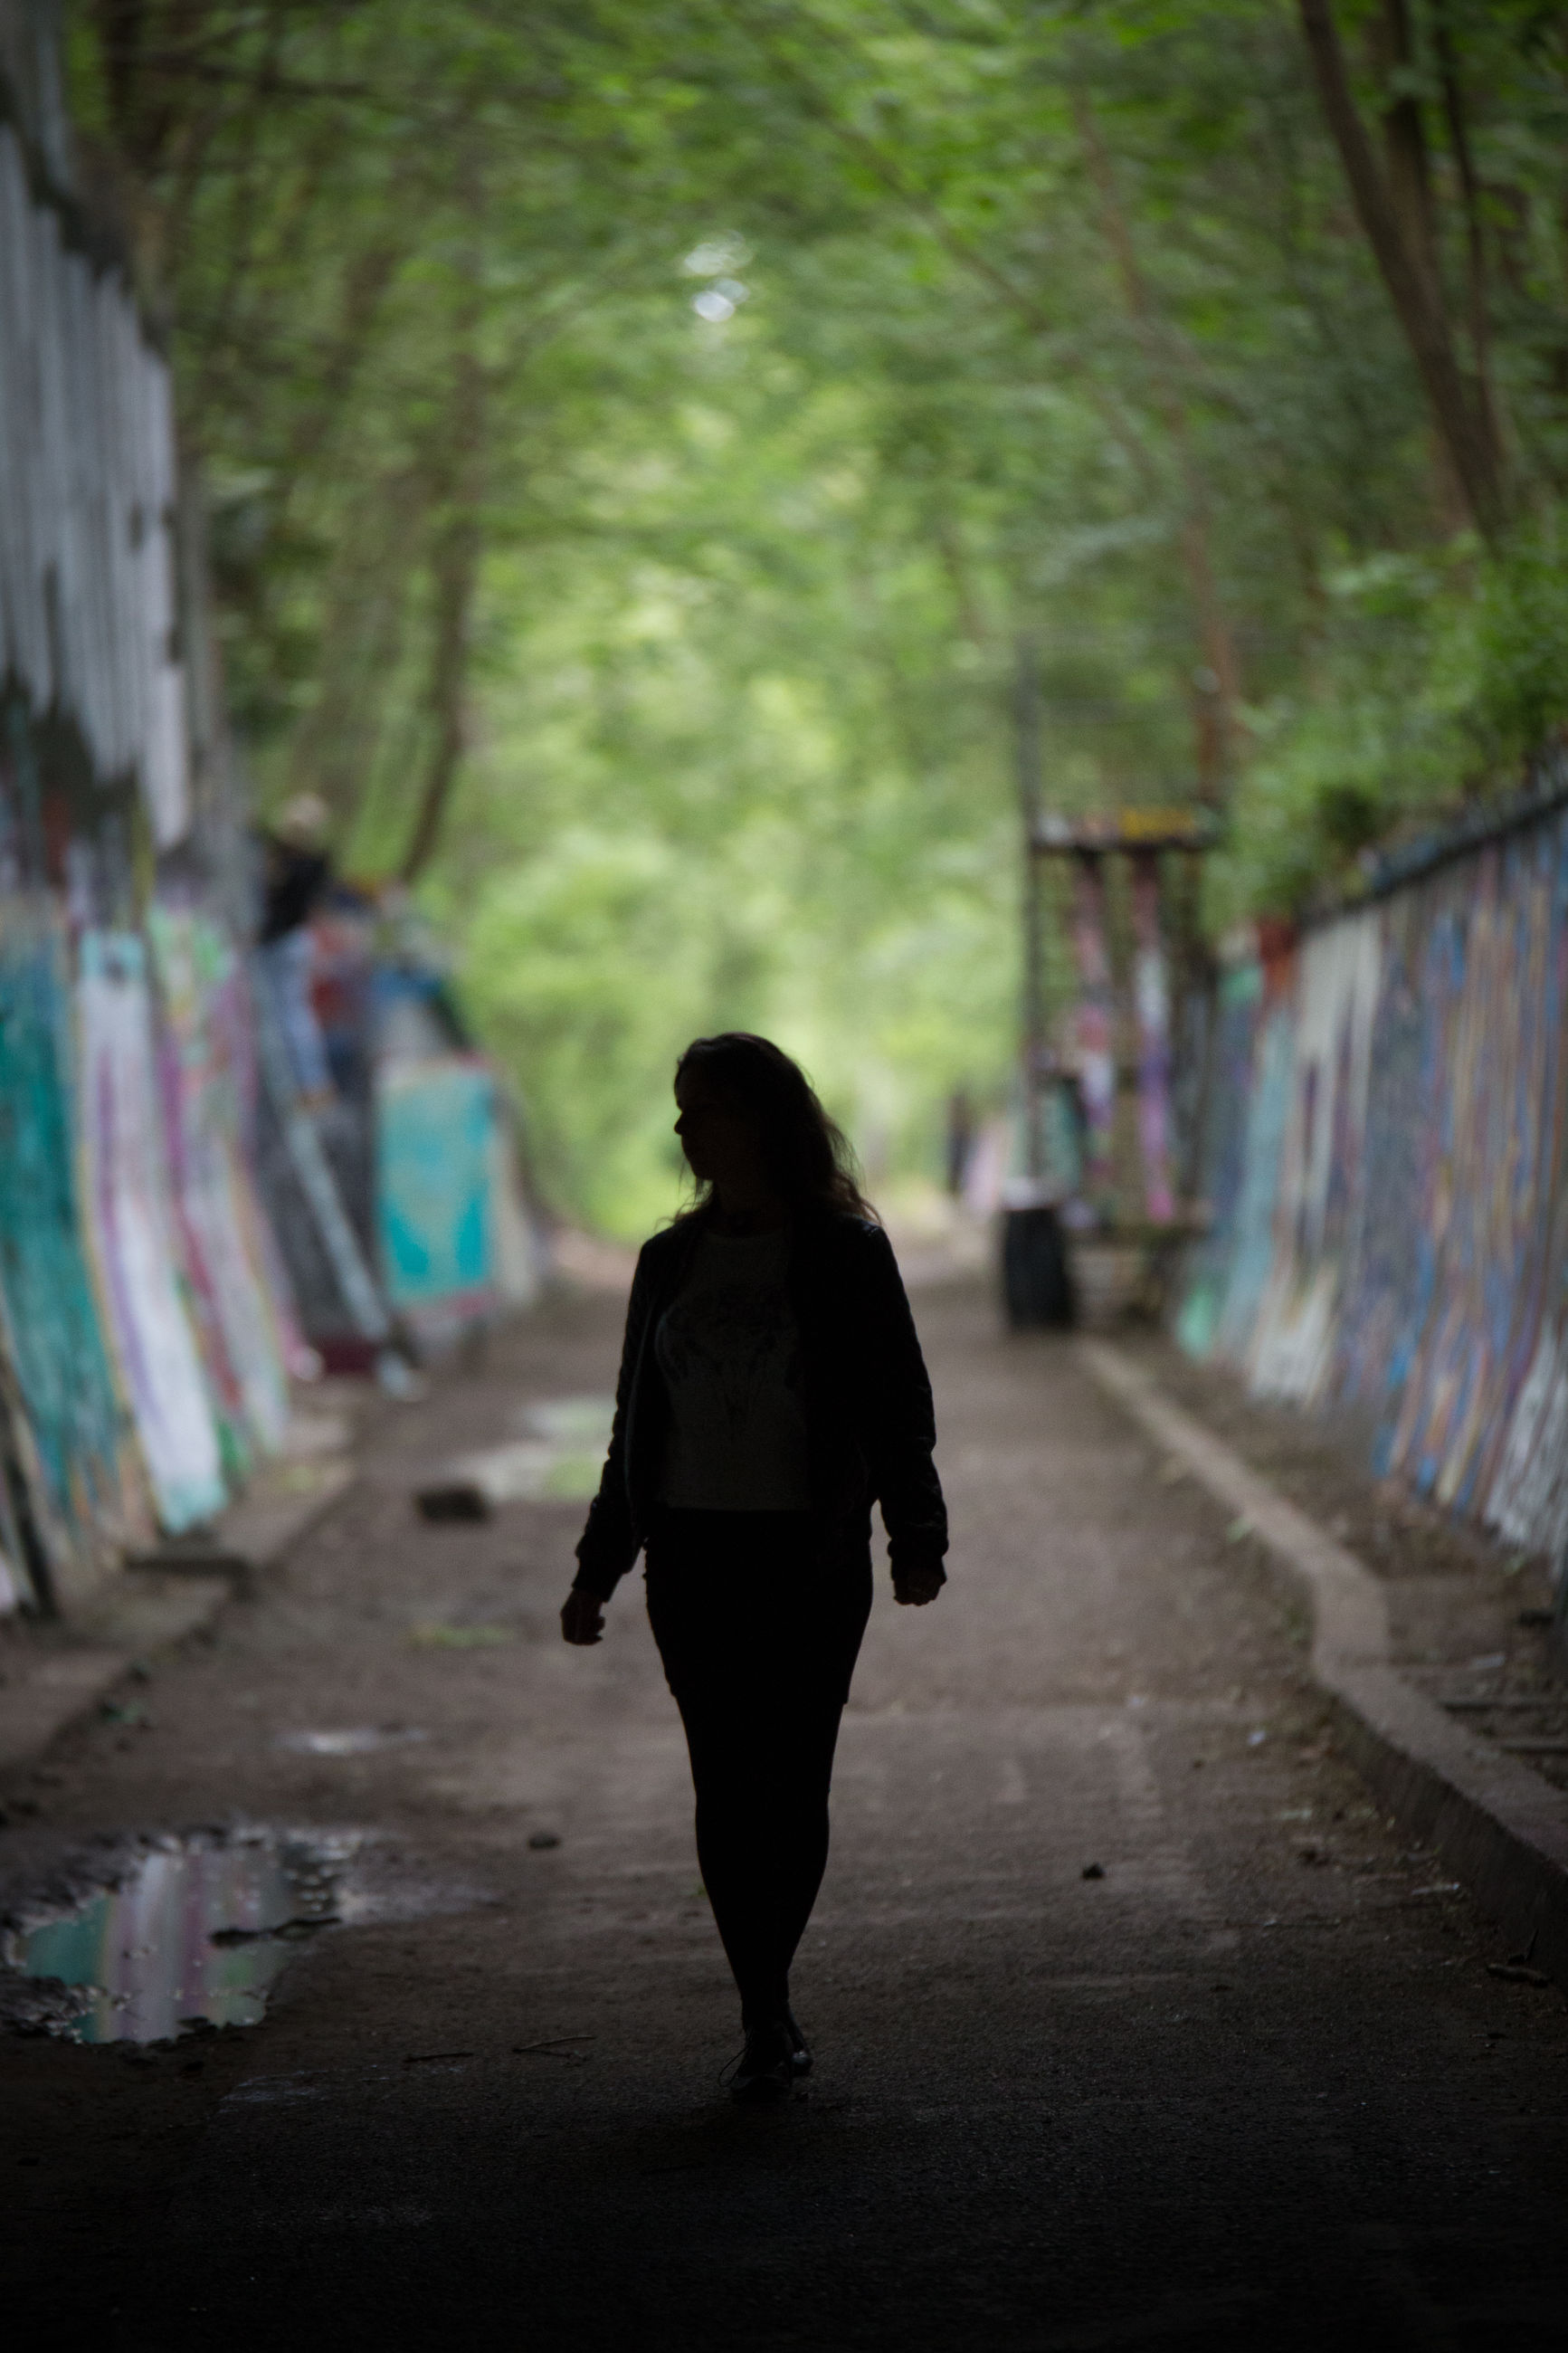 one person, full length, rear view, walking, adult, snapshot, green, architecture, women, city, road, graffiti, solitude, infrastructure, lifestyles, footpath, clothing, standing, outdoors, street, loneliness, nature, tree, young adult, day, alley, spooky, darkness, emotion